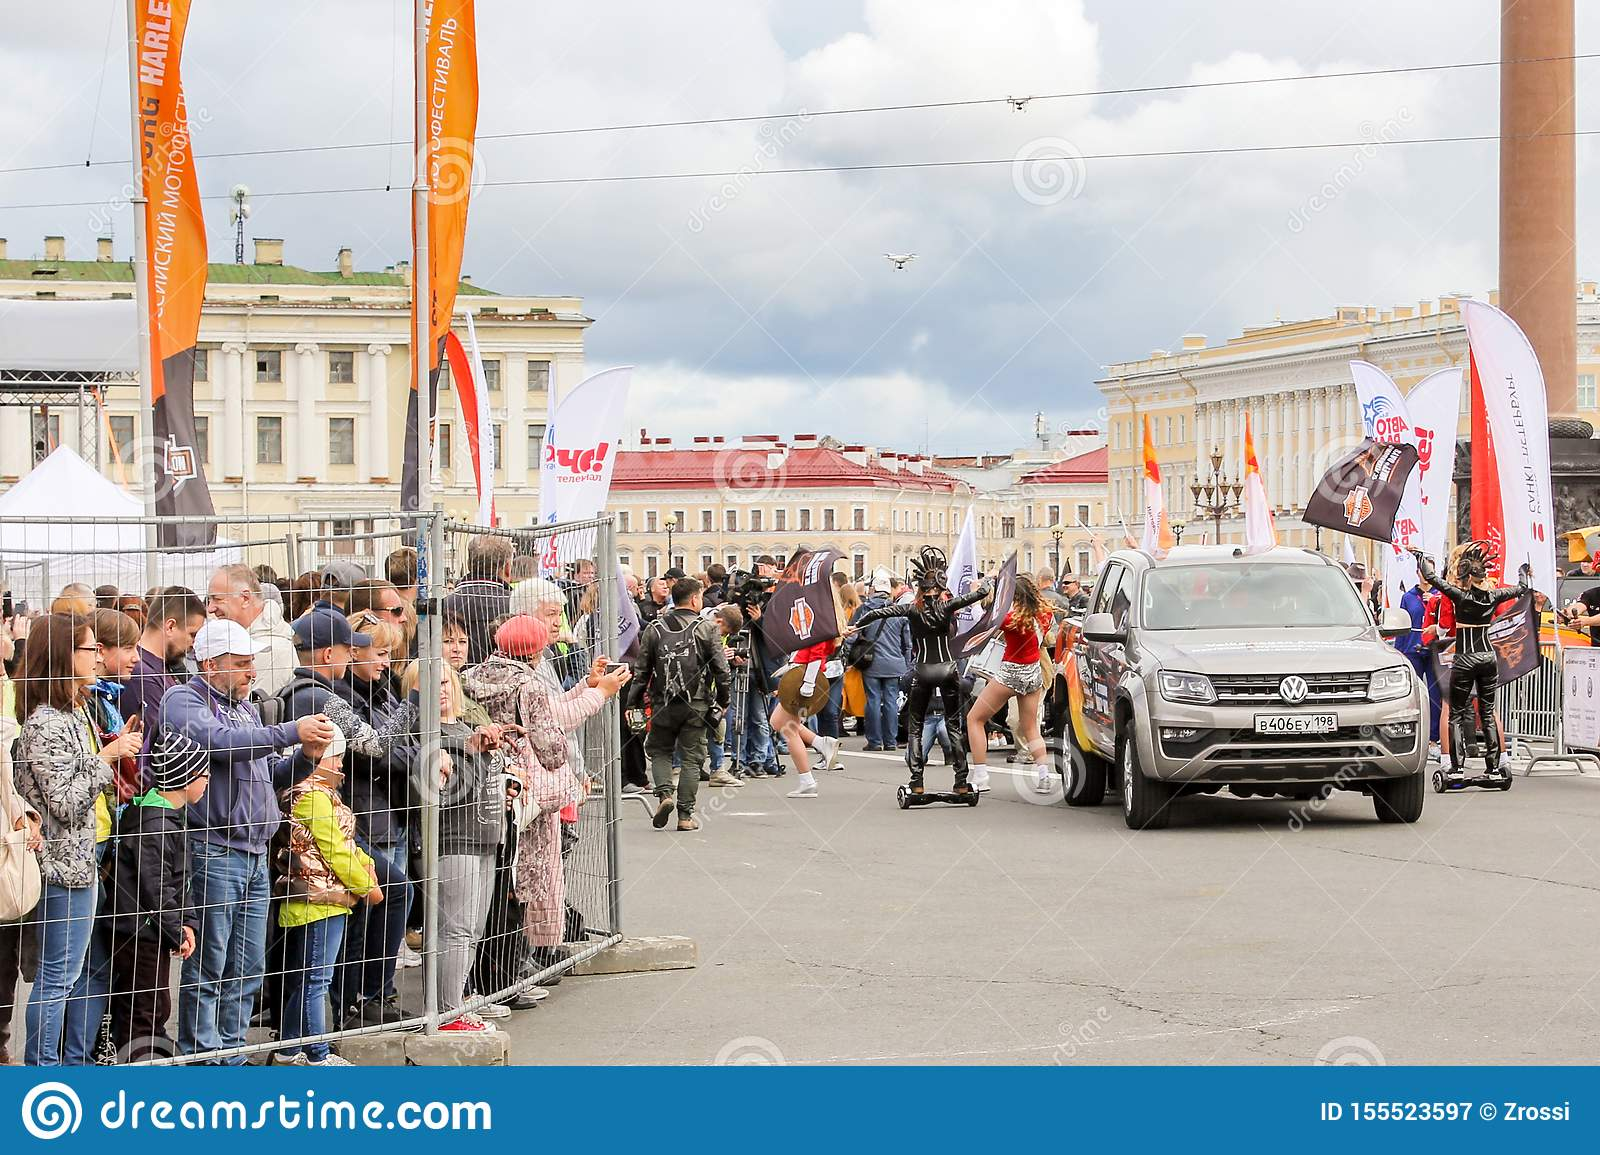 The start area of the rally on Palace Square